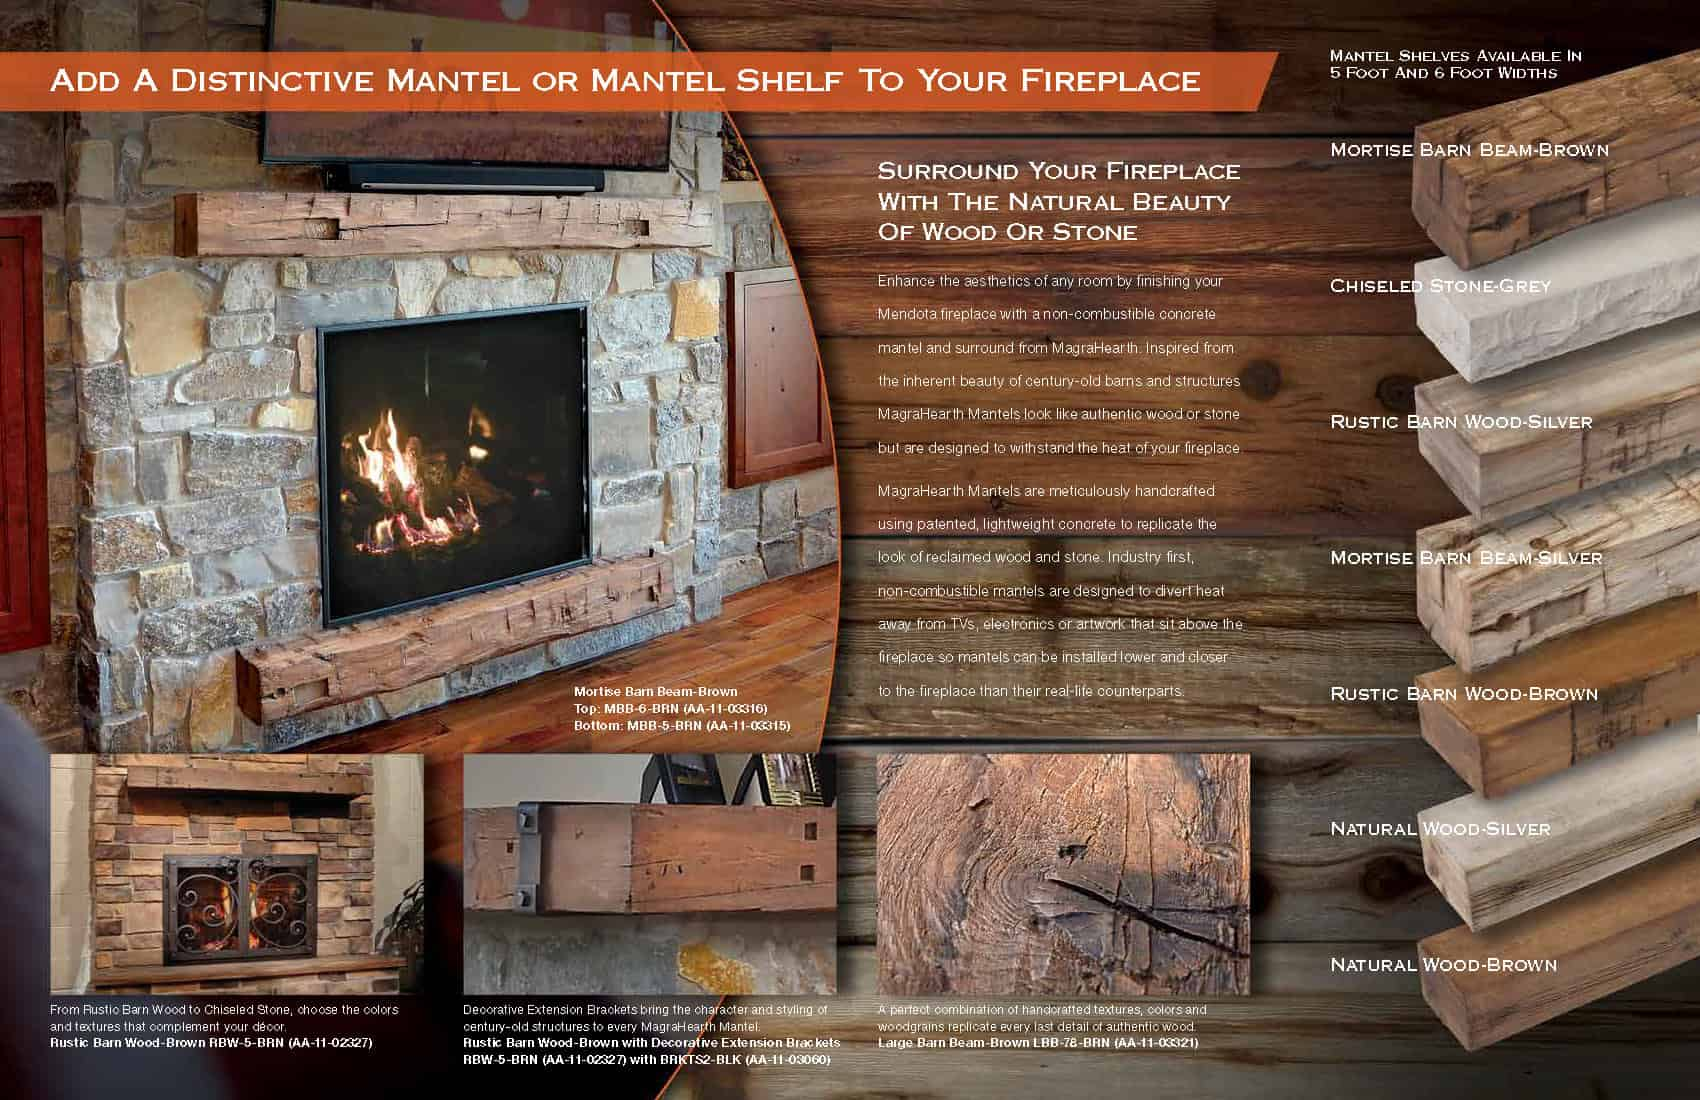 Magra Hearth Wood Mantel Non-Combustible Material 2